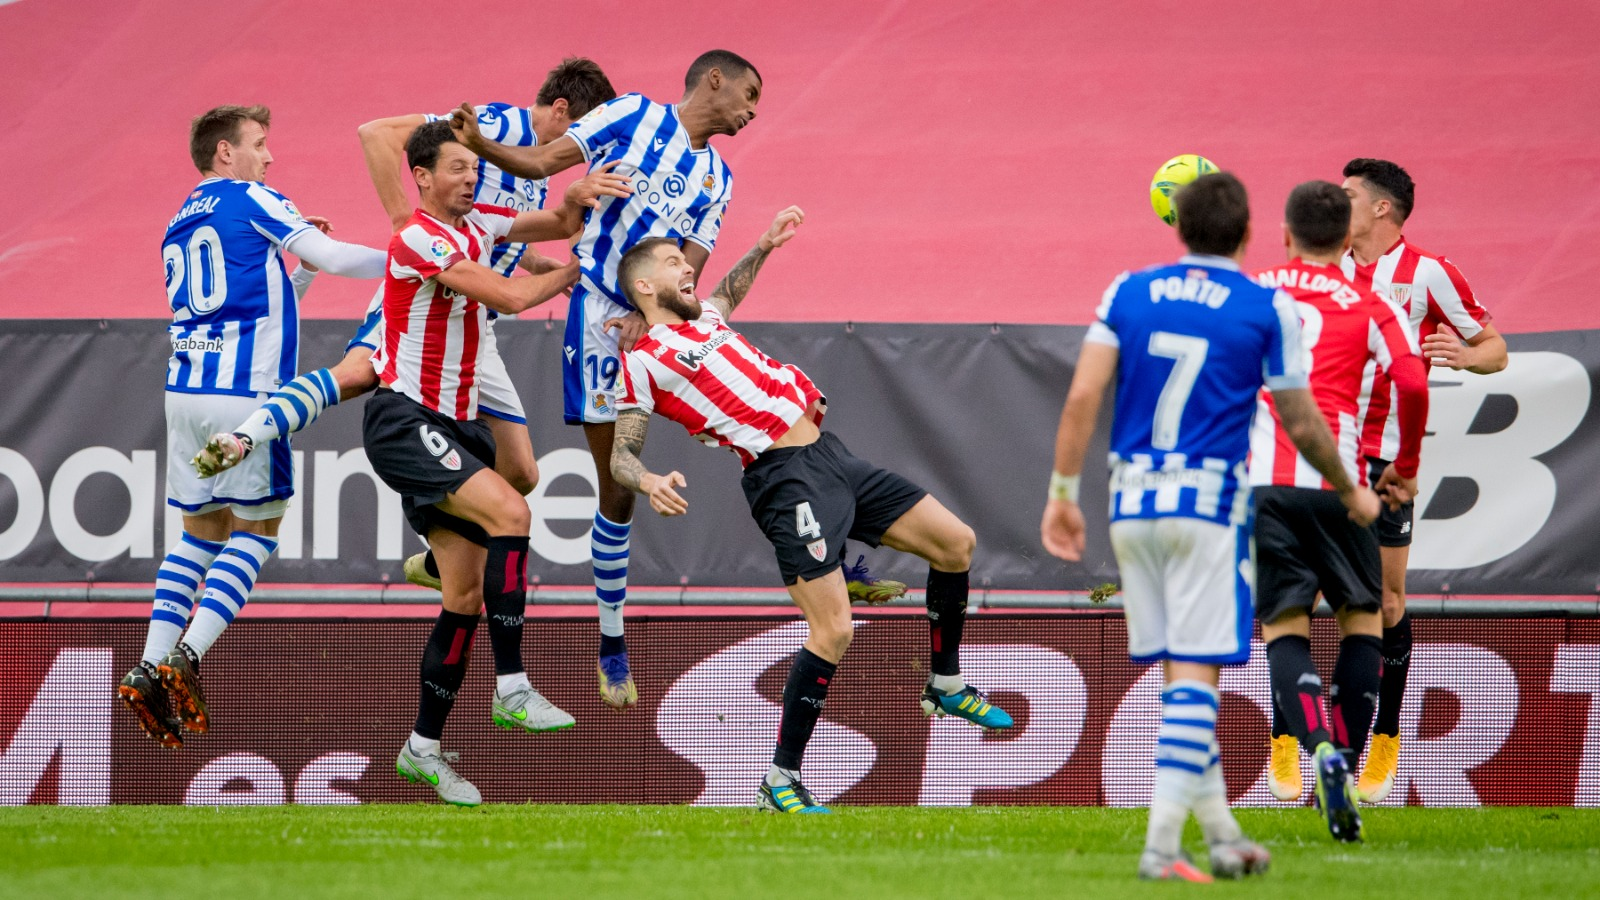 Spanish football morning headlines: Basque Copa final to be played without fans, Tusquets hits out at Laporta, De Jong on goalscoring run